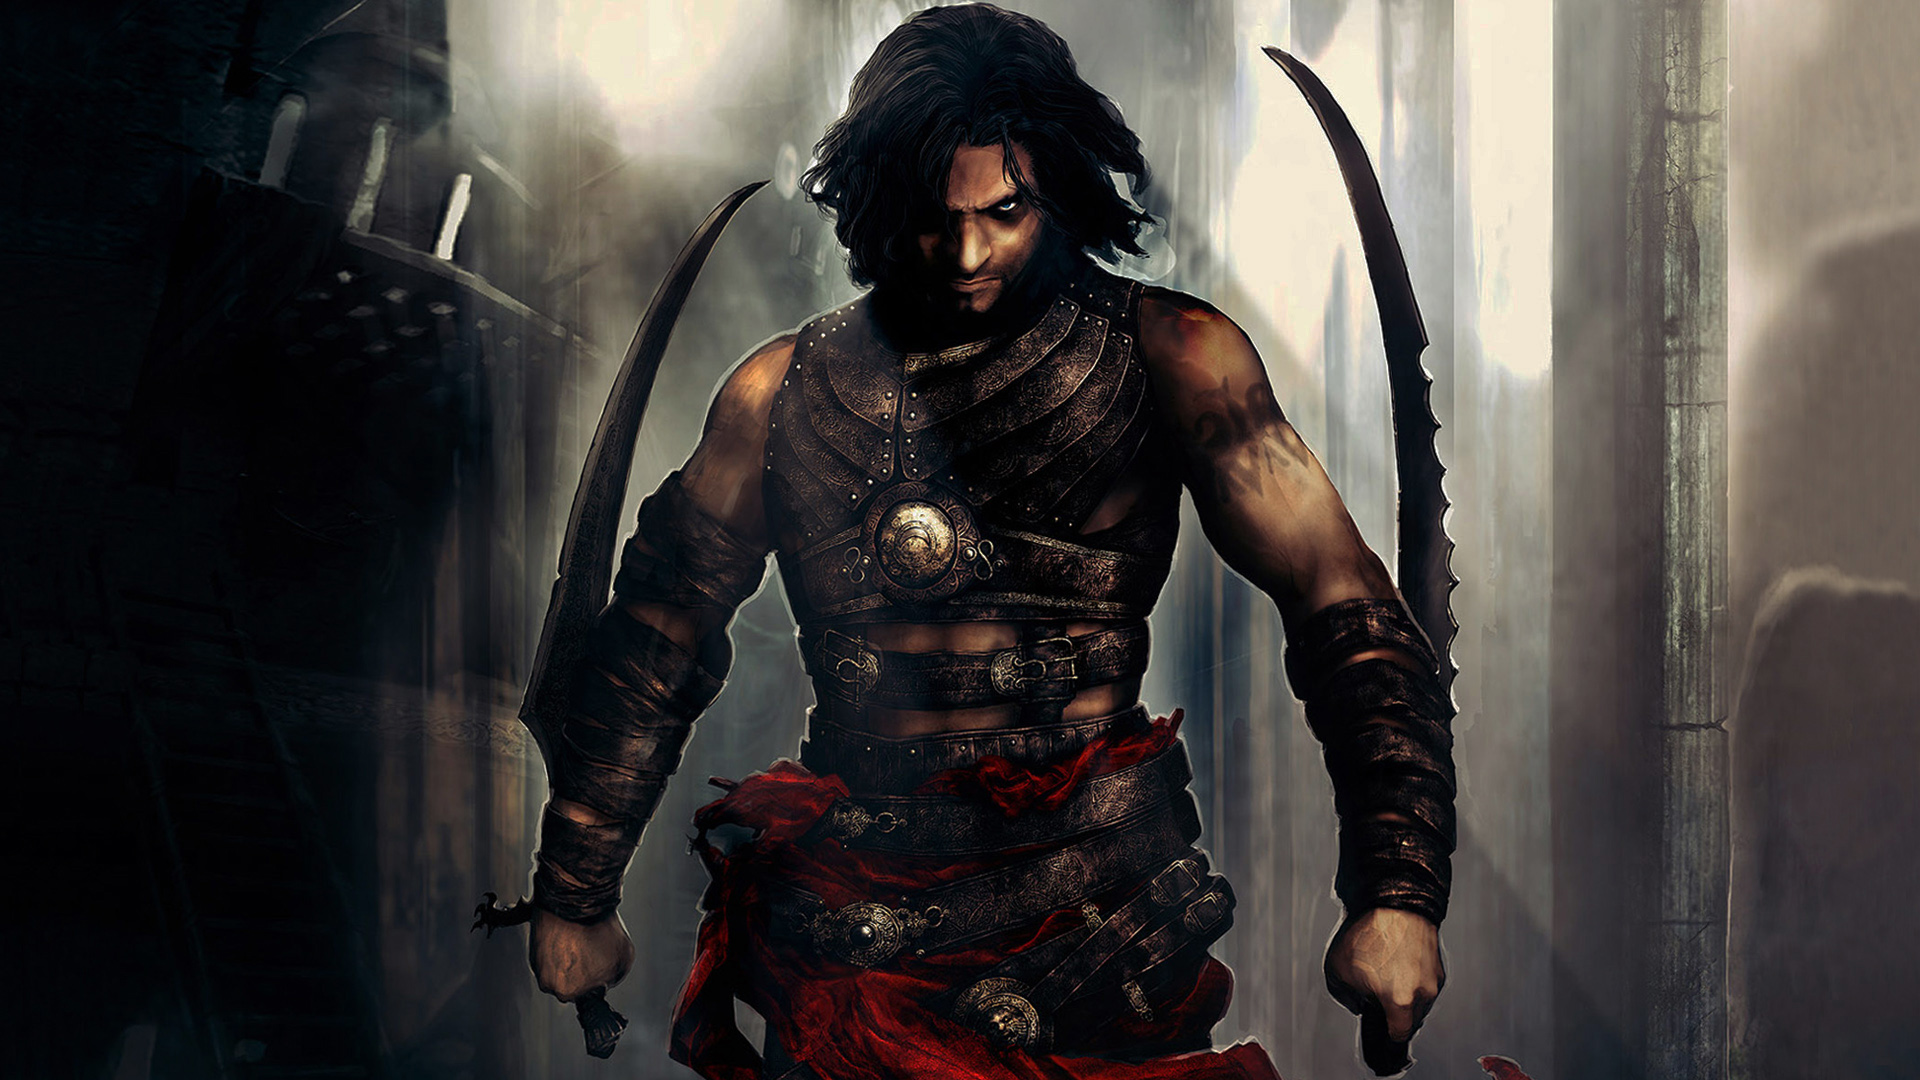 Looking Back To 2004 And The Dark Prince Of Persia Warrior Within Thexboxhub